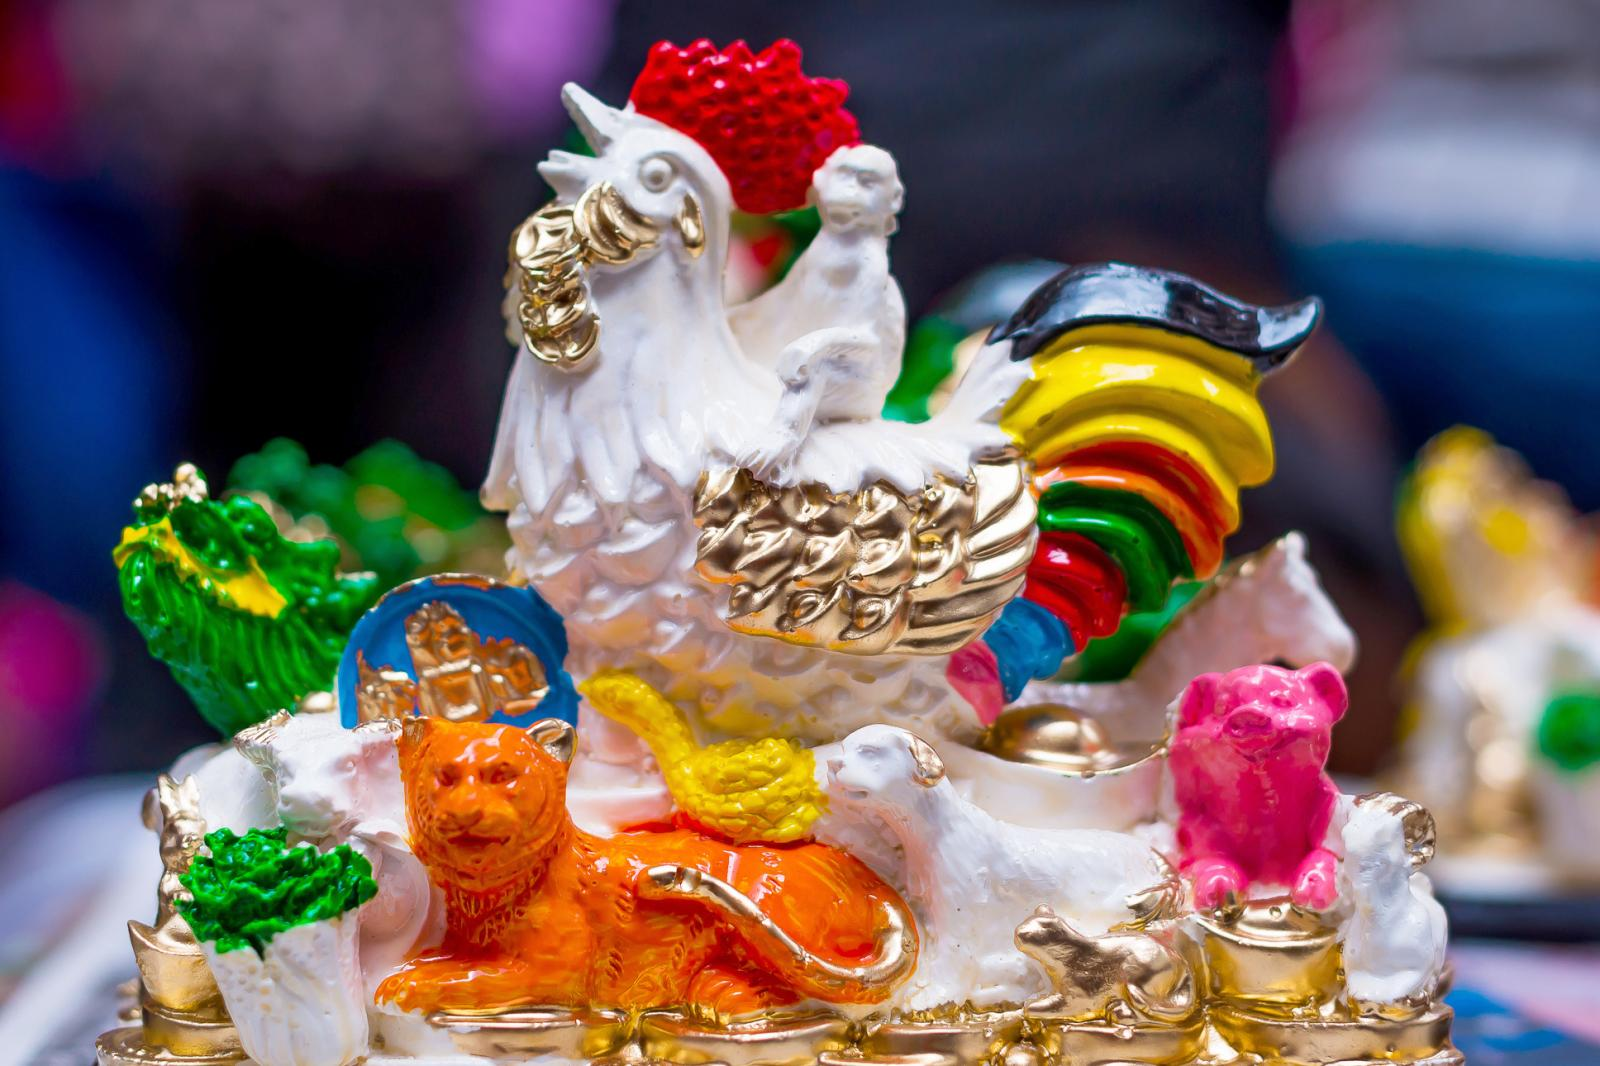 Year of the Rooster Figurine